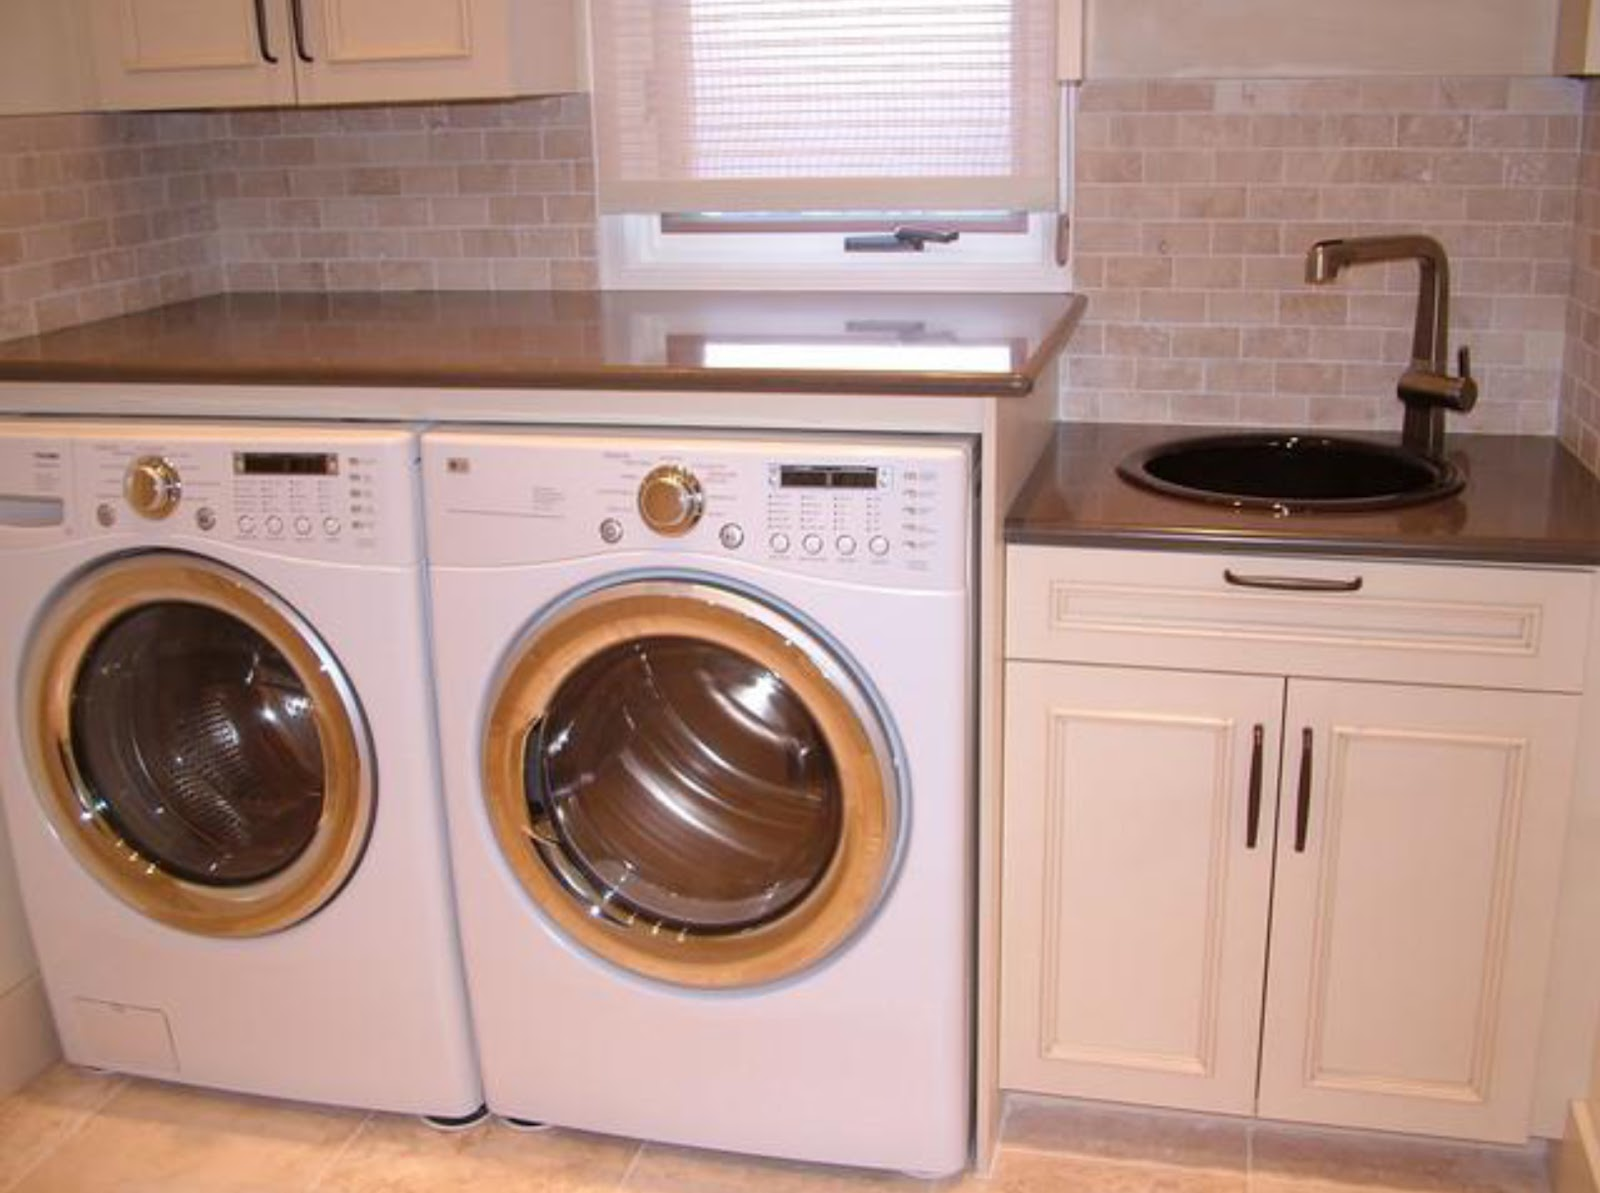 Simplifying remodeling designer 39 s touch 10 tidy laundry rooms - Best washer and dryer for small spaces property ...